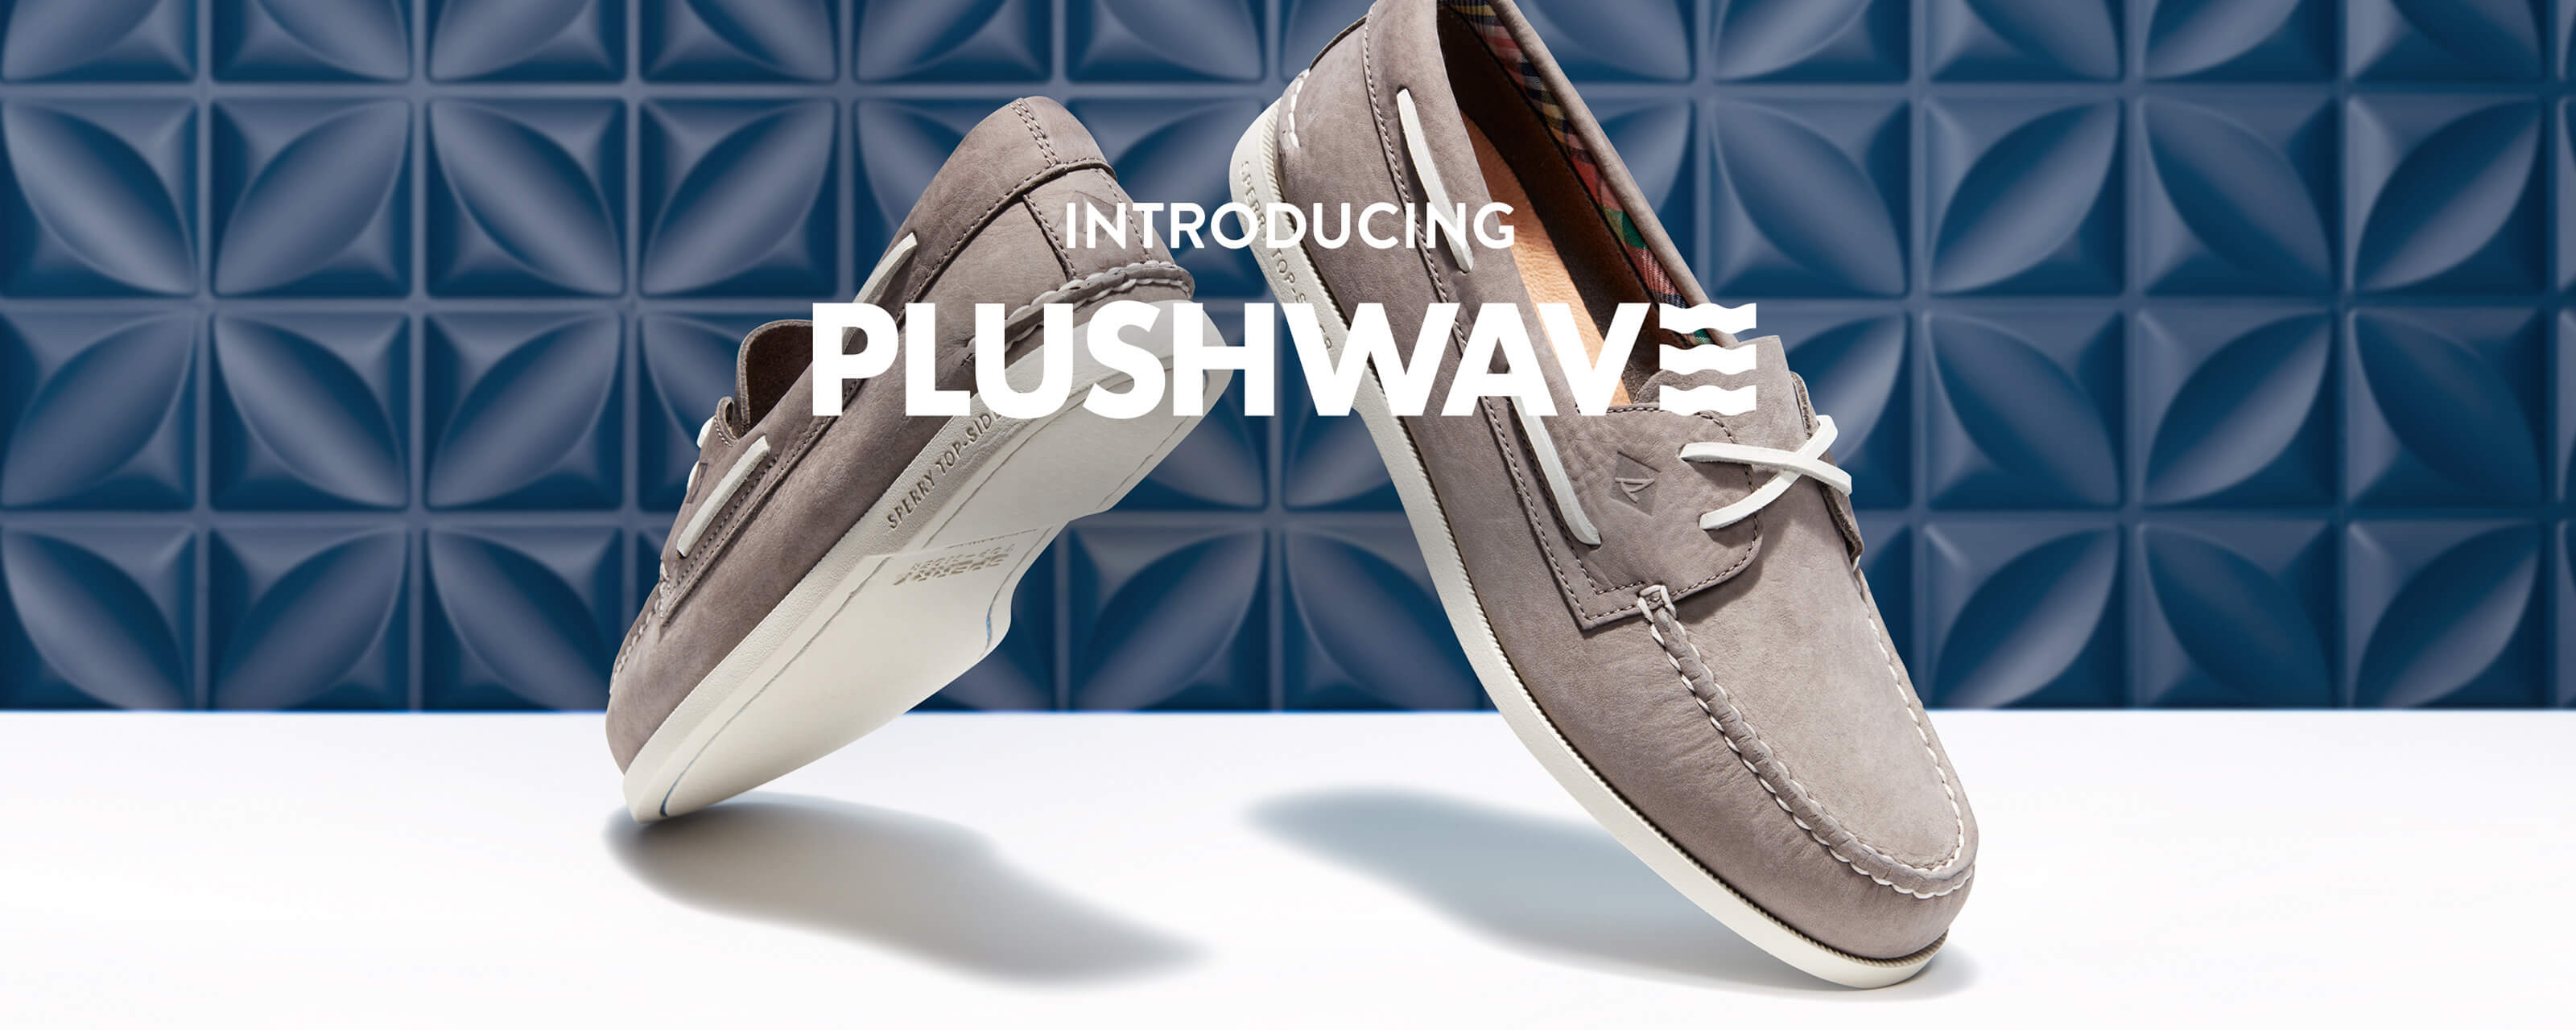 Introducing Plushwave